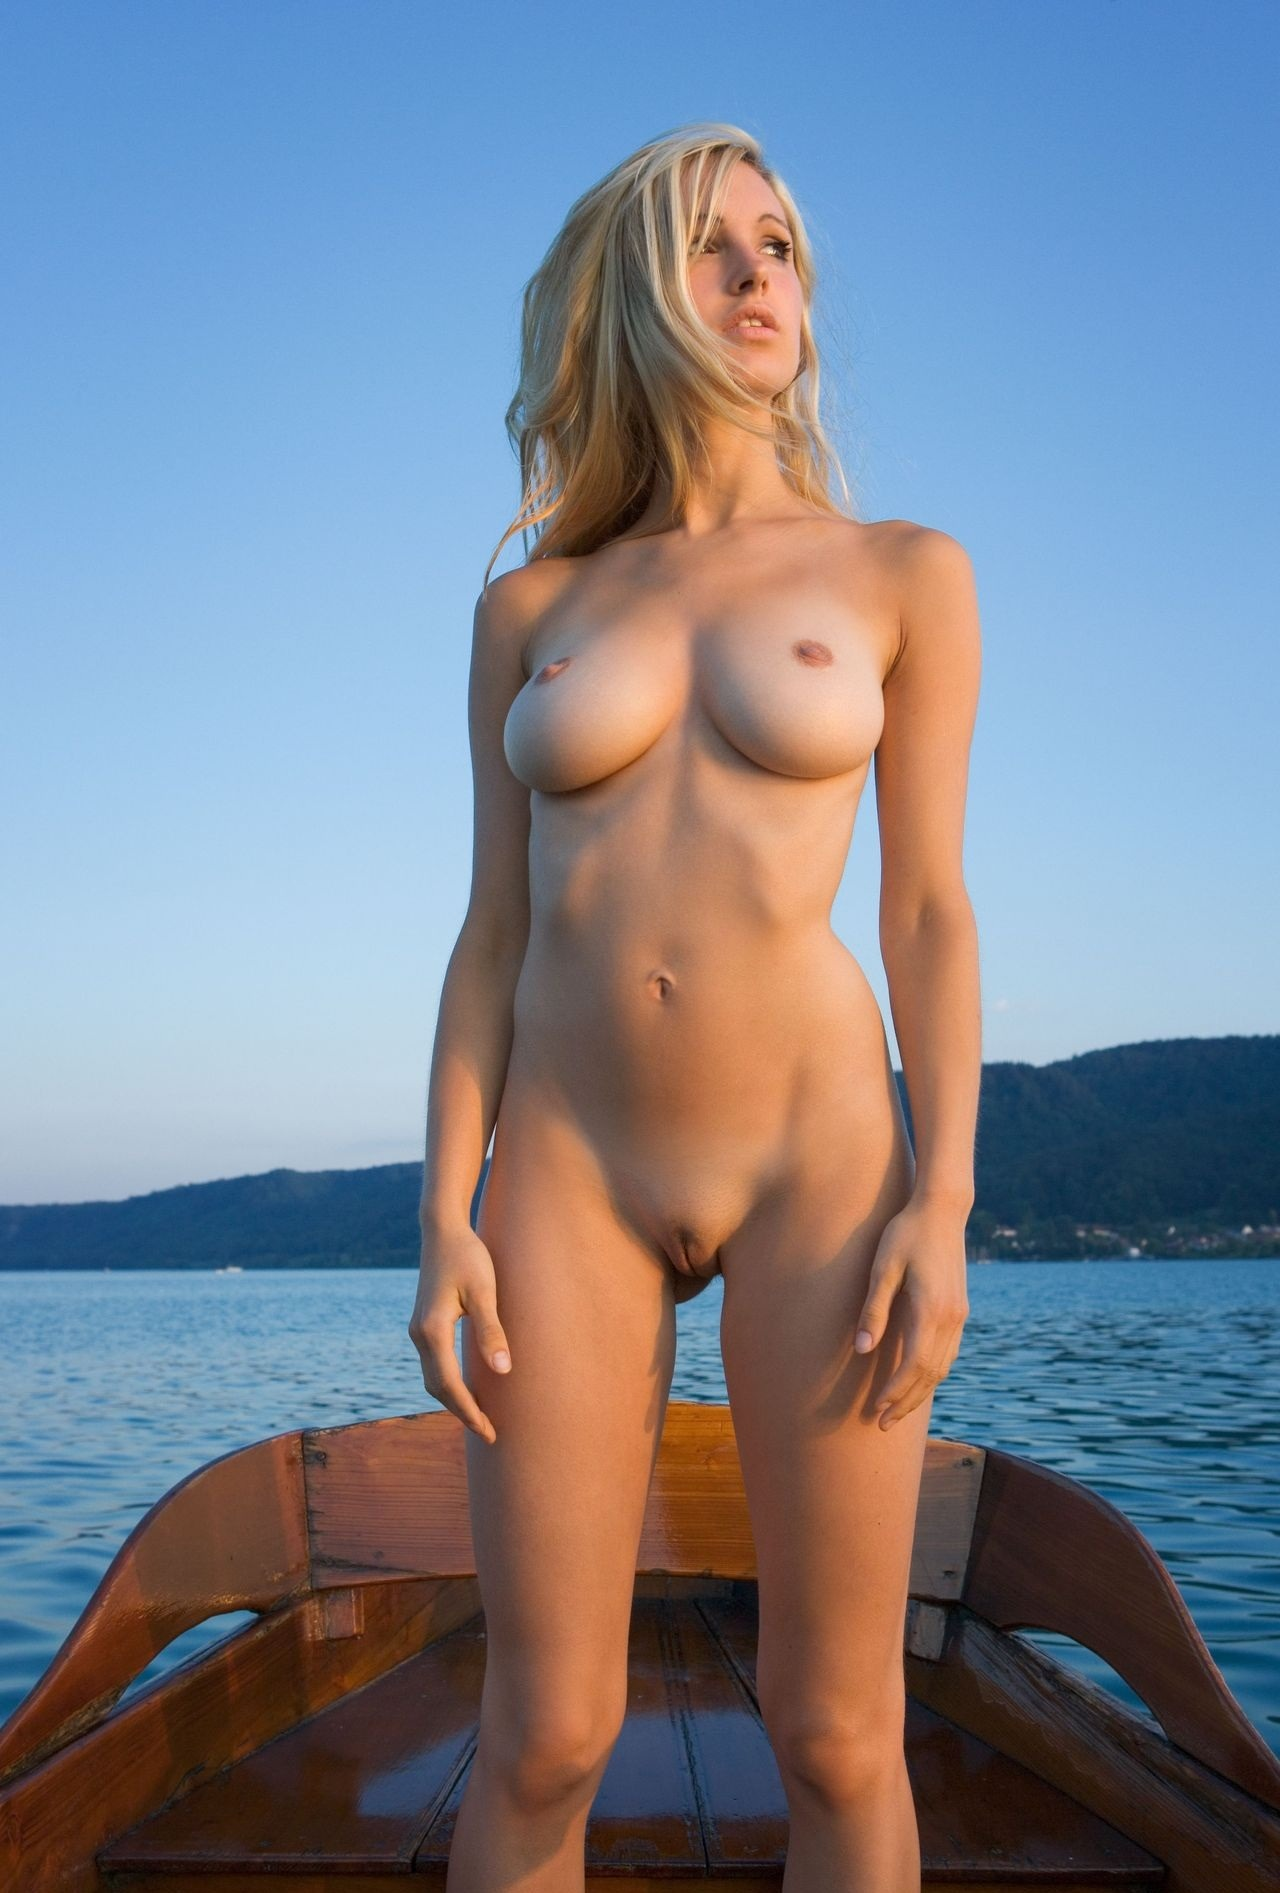 thehottesthere:  With over 13 MILLION page views.And almost 50,000 followers.The Hottest Here is simply the best nude Tumblr.Each day we post 50 pictures of the hottest women in the world.